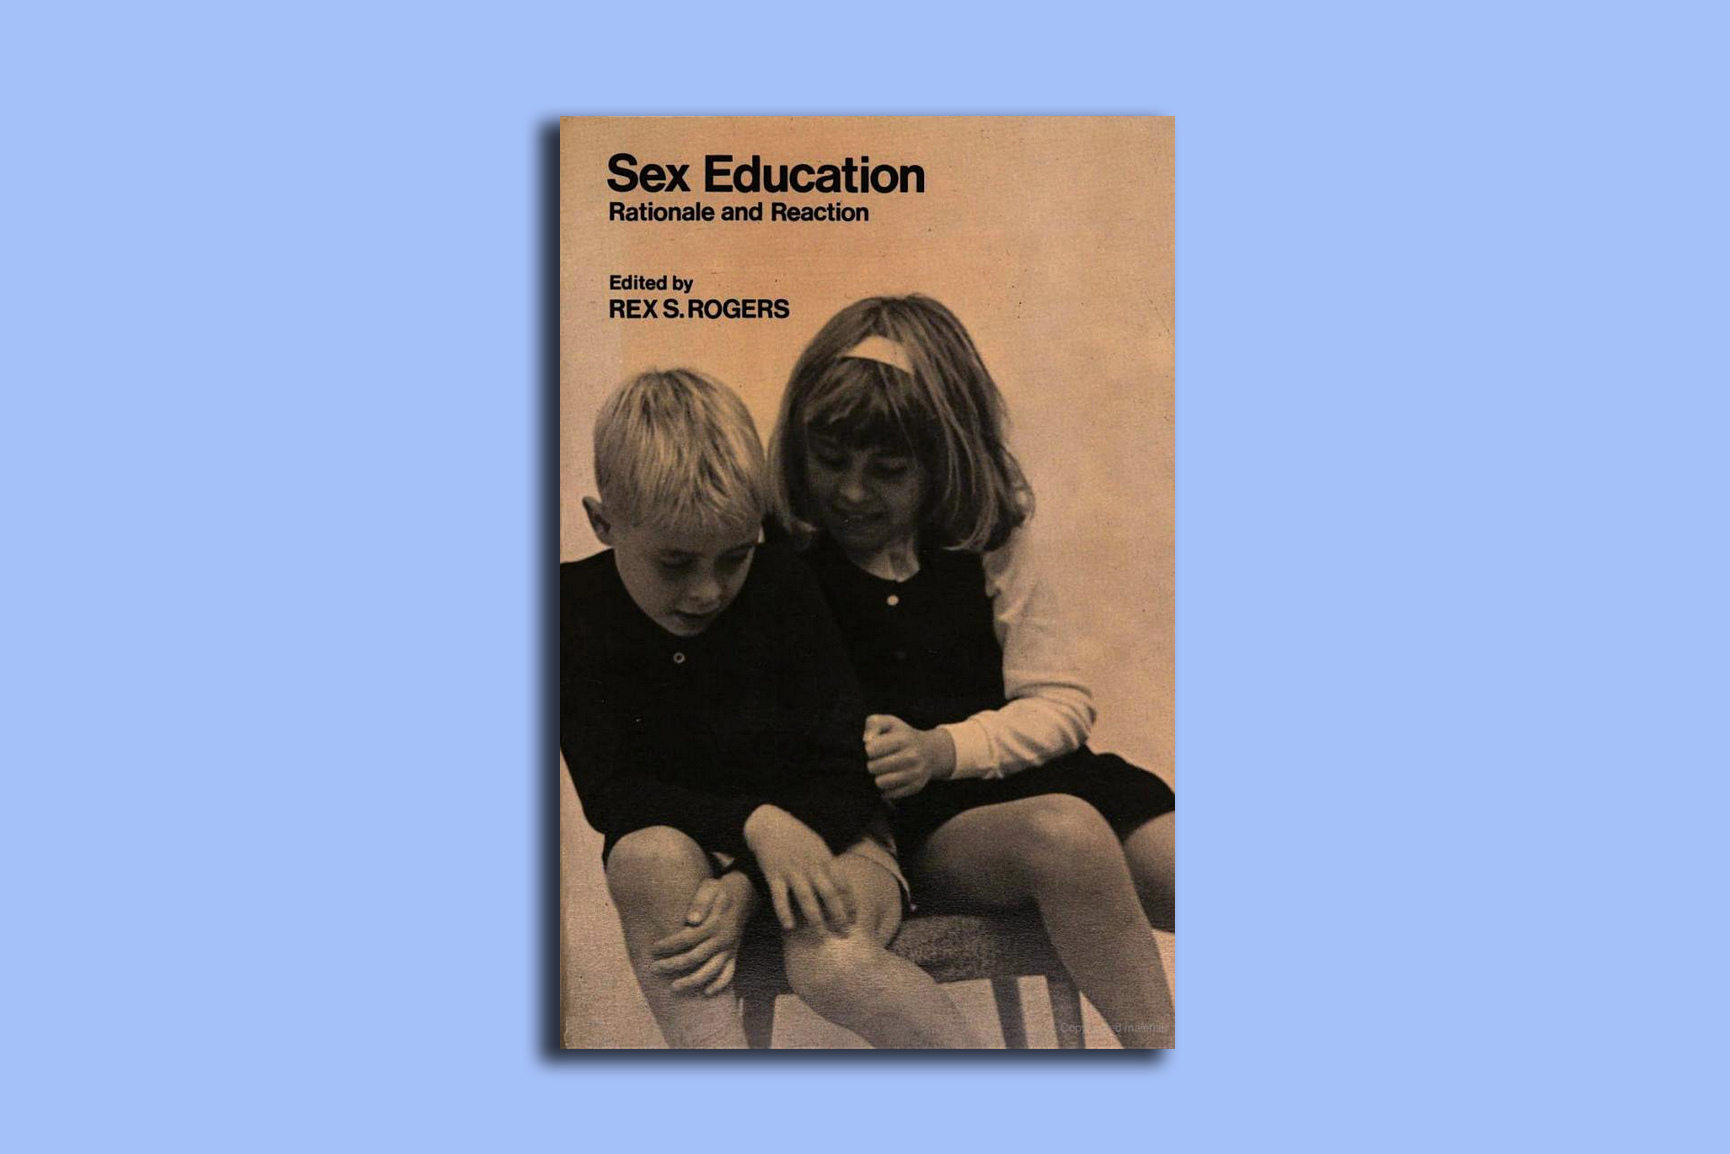 """At the most basic level, a concern with sex education must stem from the recognition that human socio-sexual development is a learning process,"" said this scholarly 1974 journal."